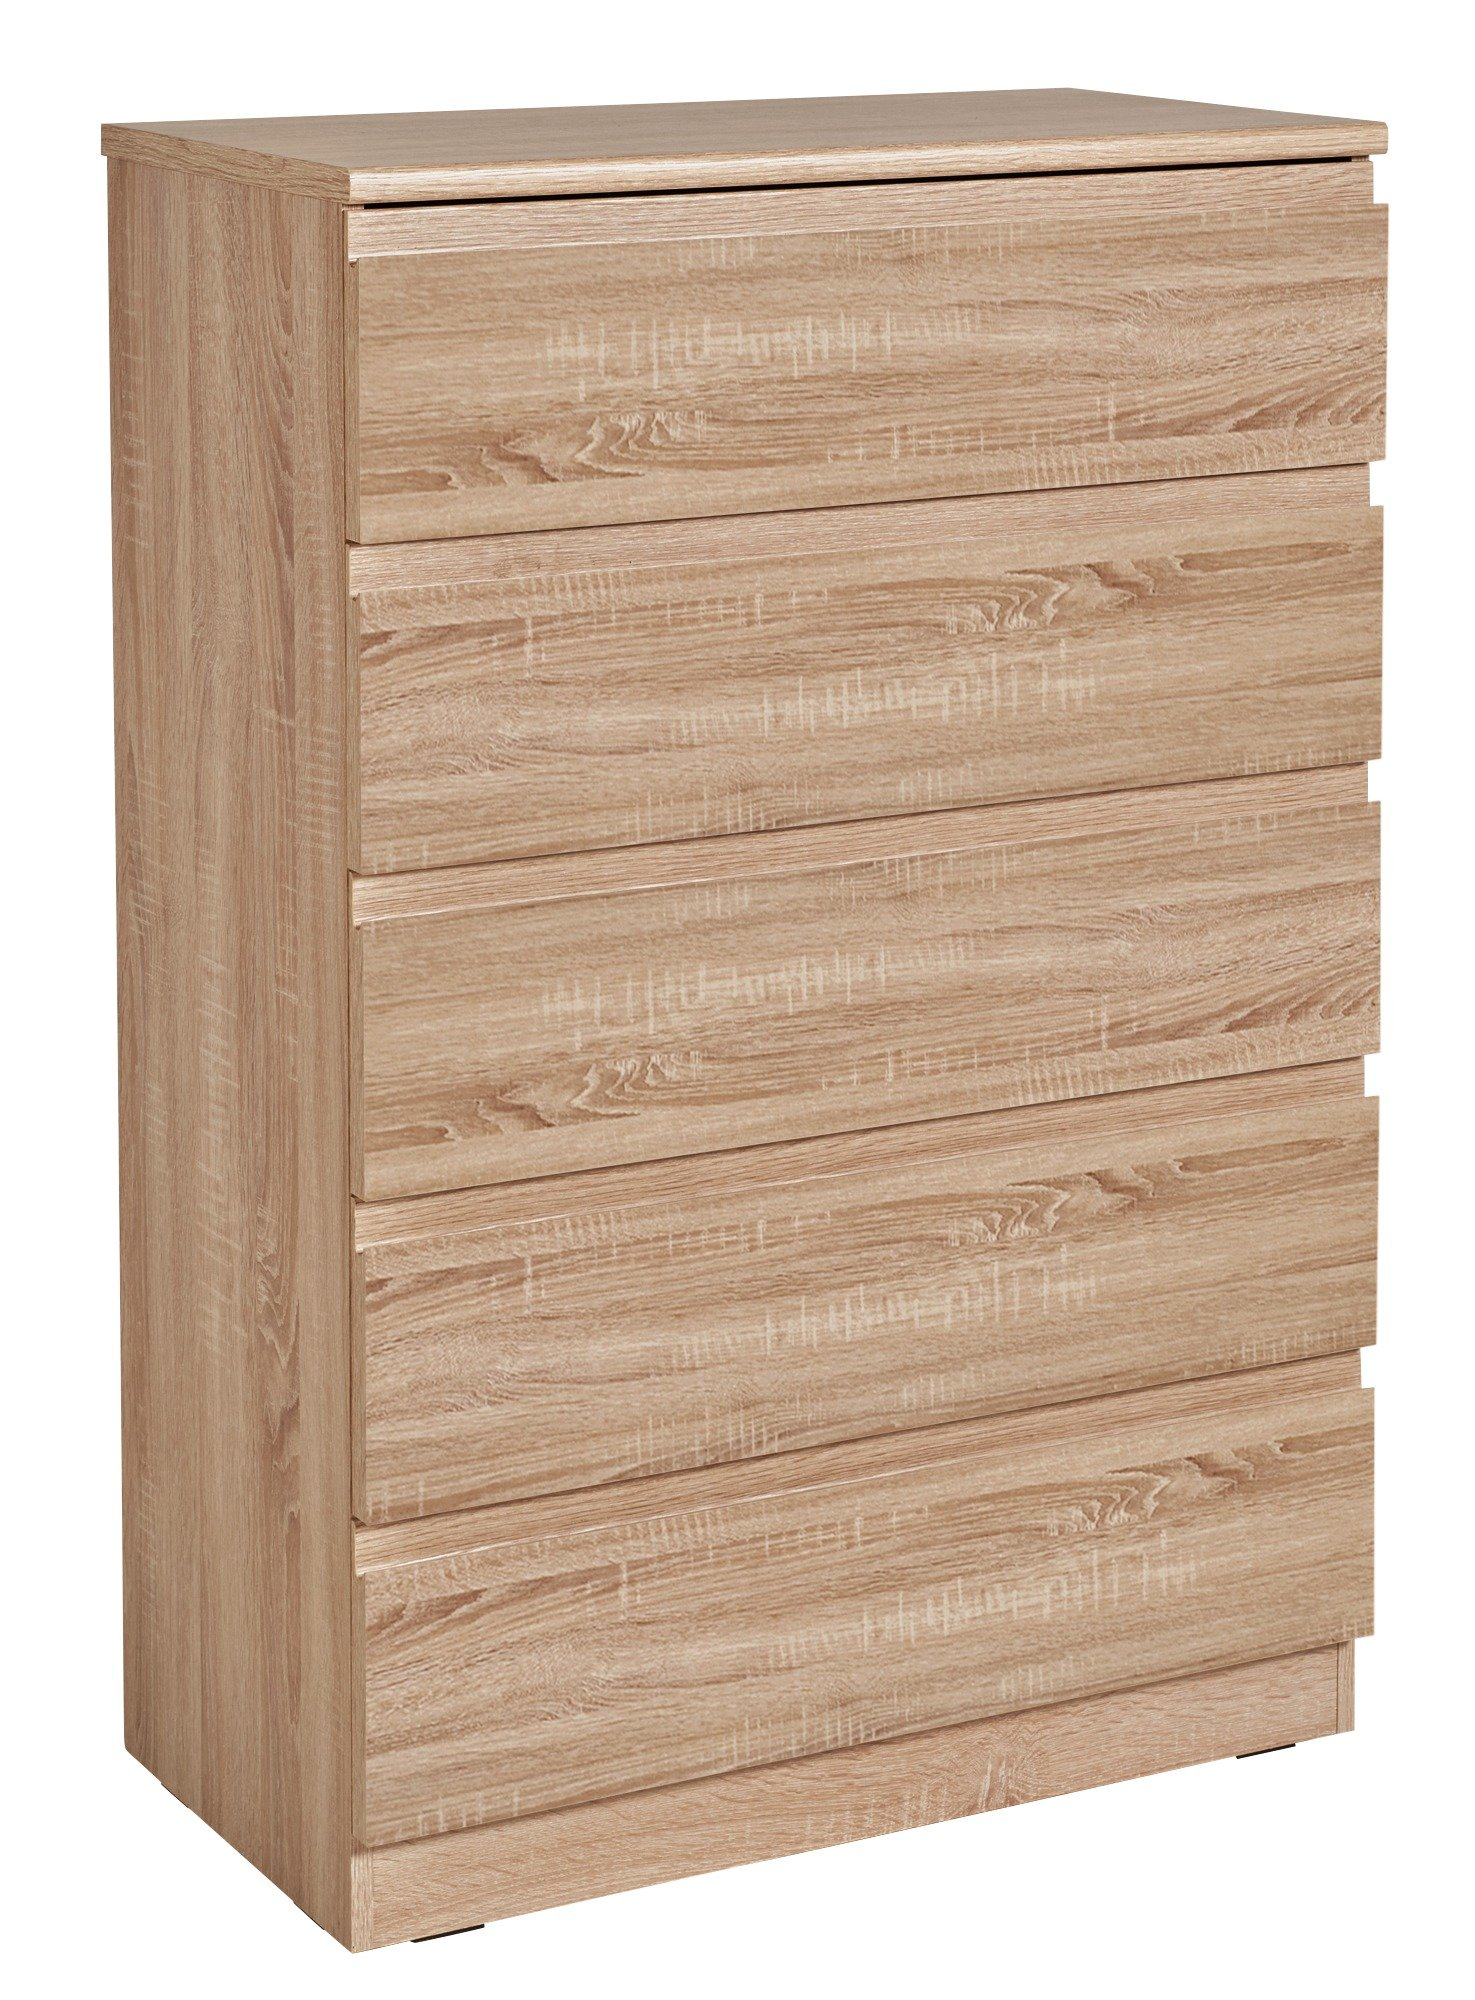 Image of Avenue 5 Drawer Chest - Brown Oak Effect